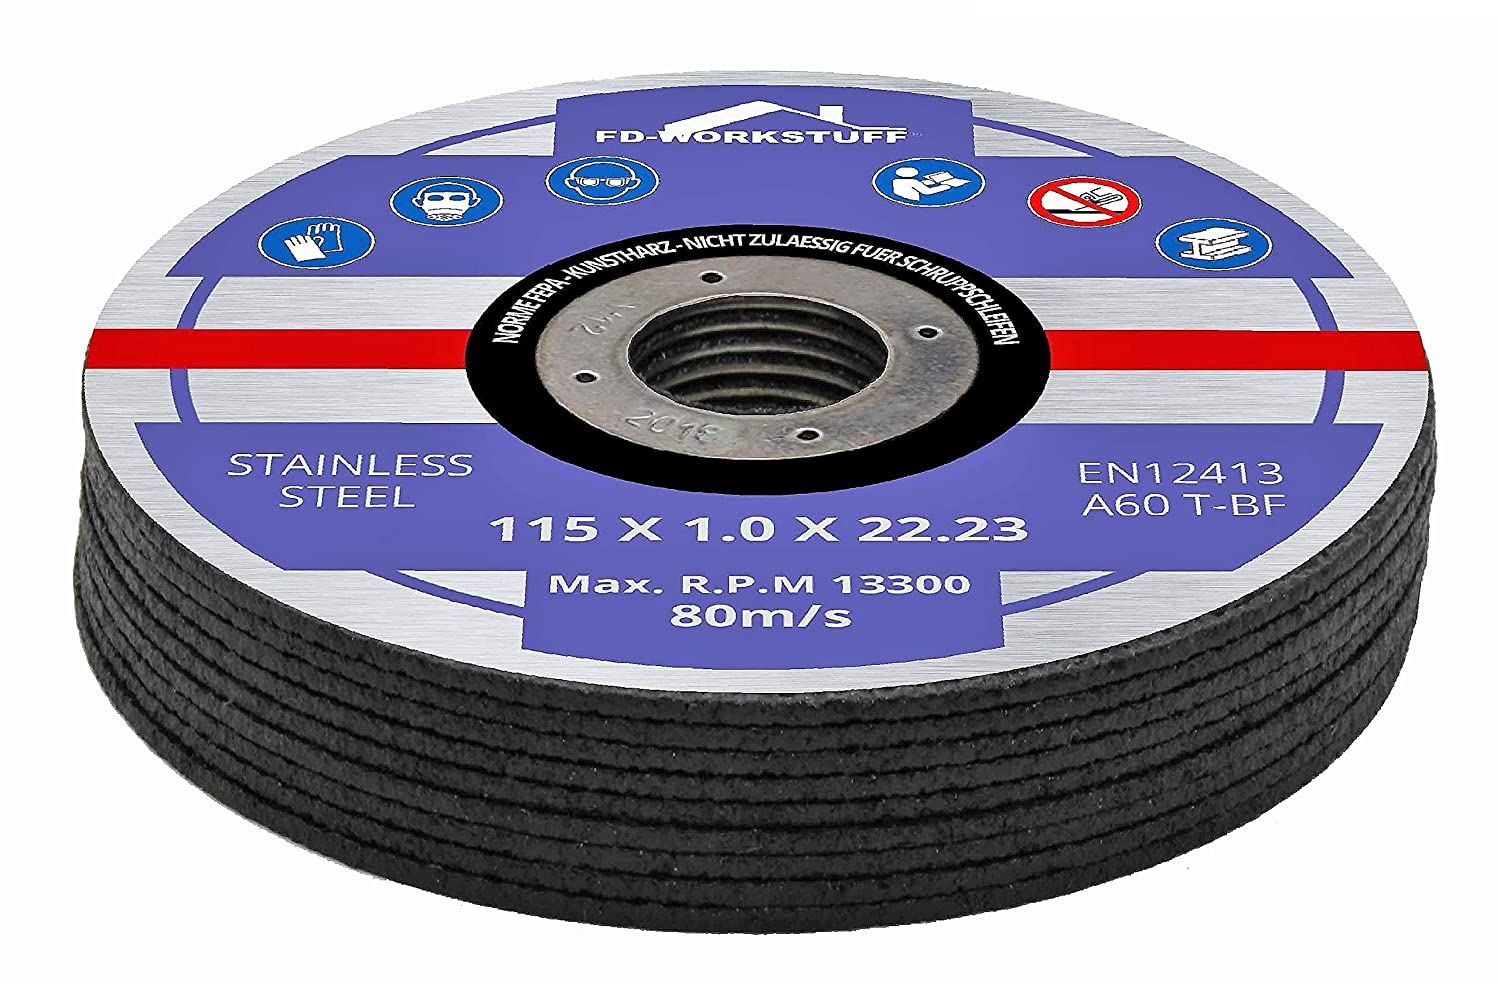 10 x Inox stainless steel cutting discs 115 x 1.0 mm for cutting or angle grinders, flex fd-workstuff